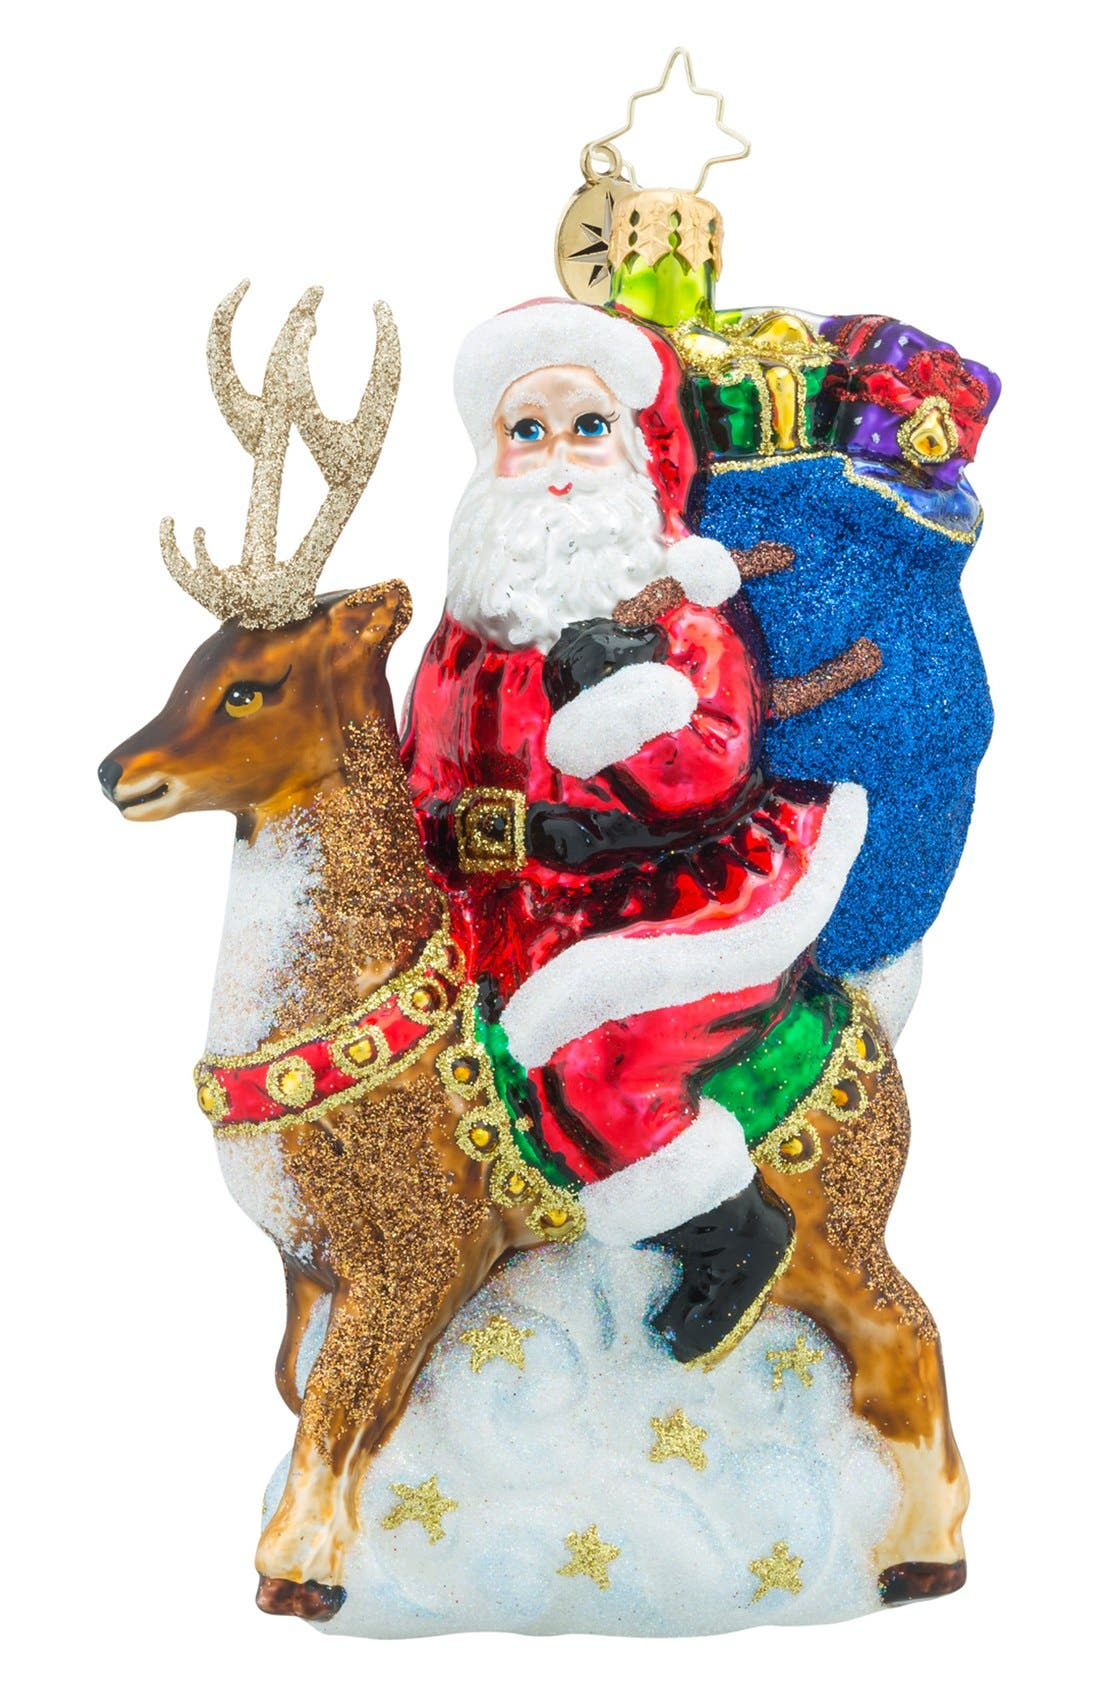 Alternate Image 1 Selected - Christopher Radko 'Love My Ride' Santa & Reindeer Ornament